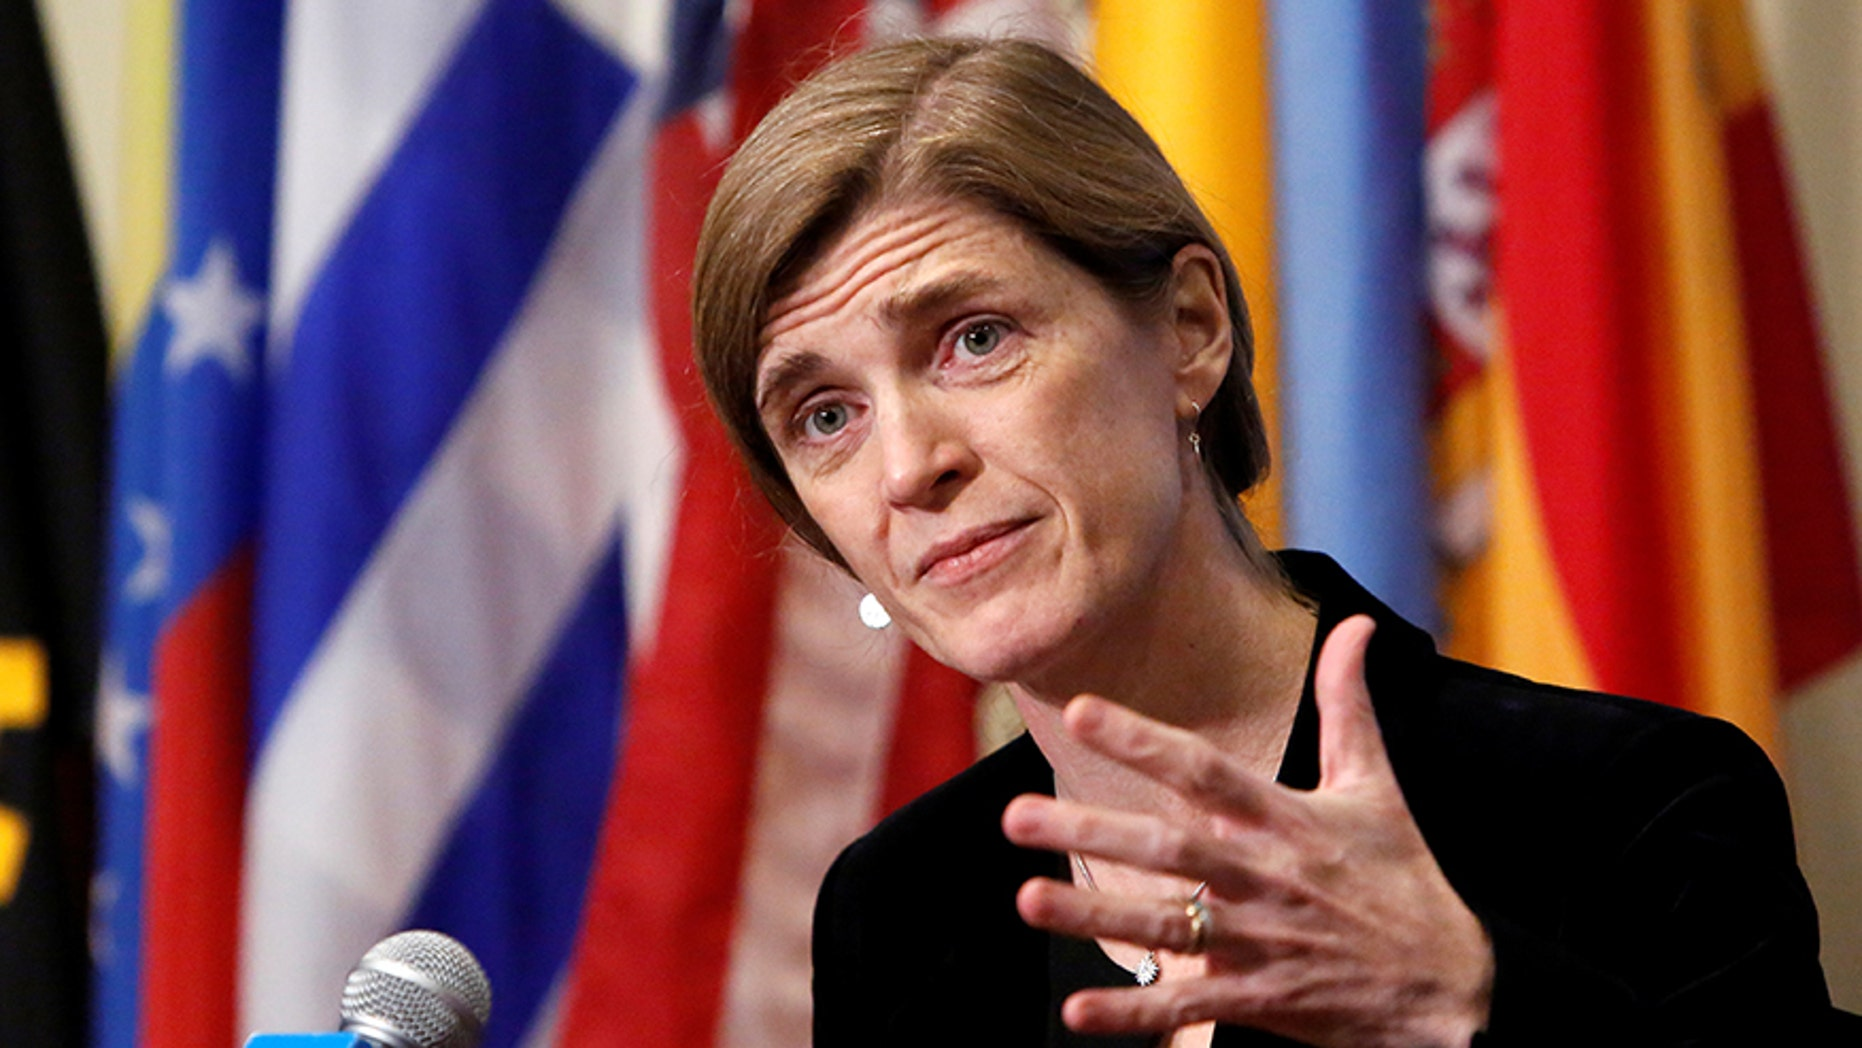 United States Ambassador to the United Nations Samantha Power addresses media following a United Nations Security Council vote,